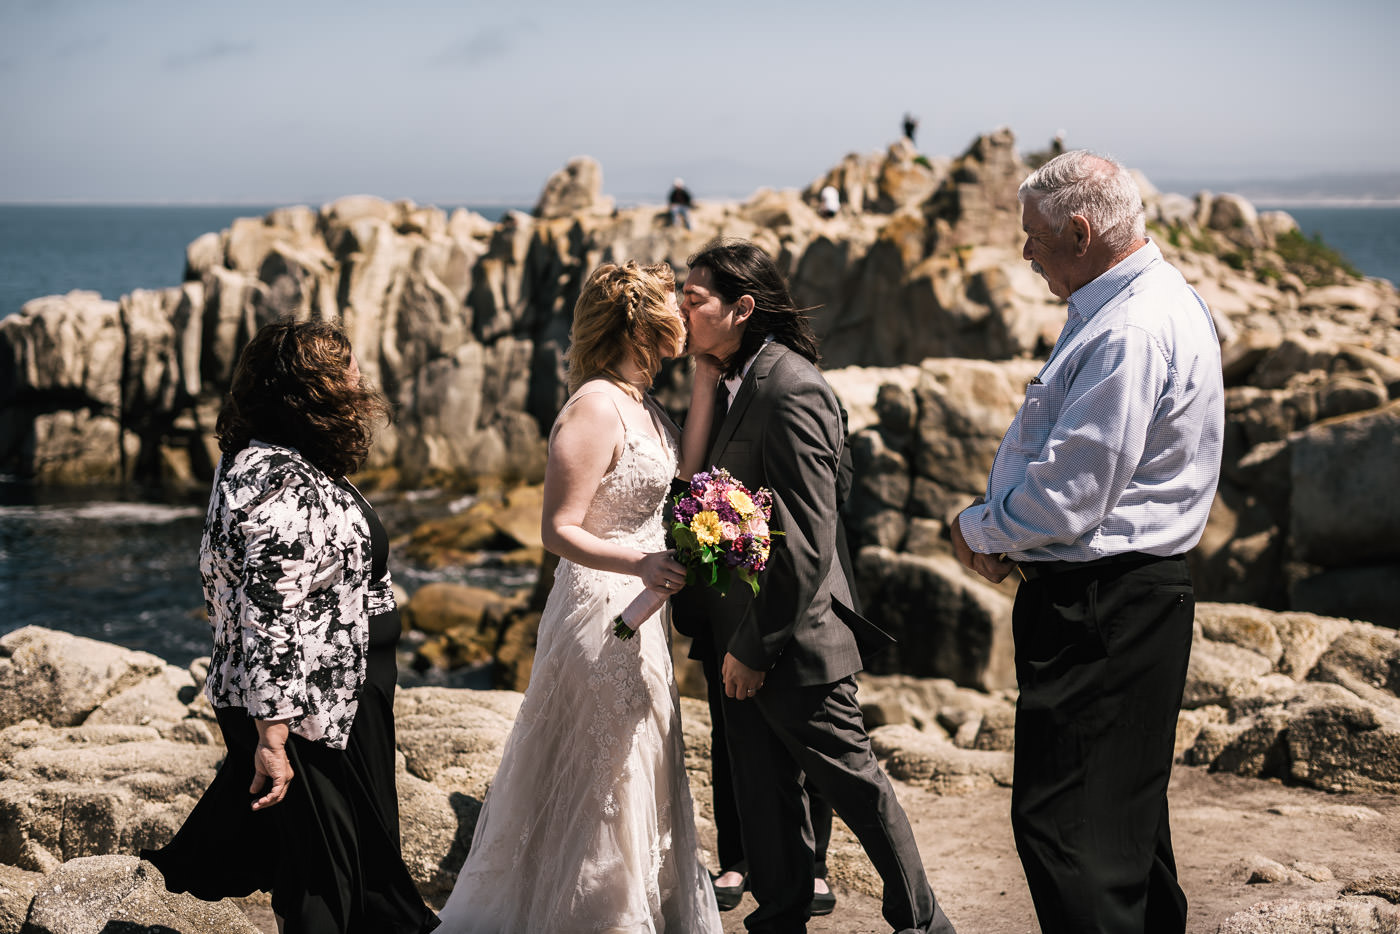 First kiss at a romantic wedding ceremony at Lovers point in Pacific grove.